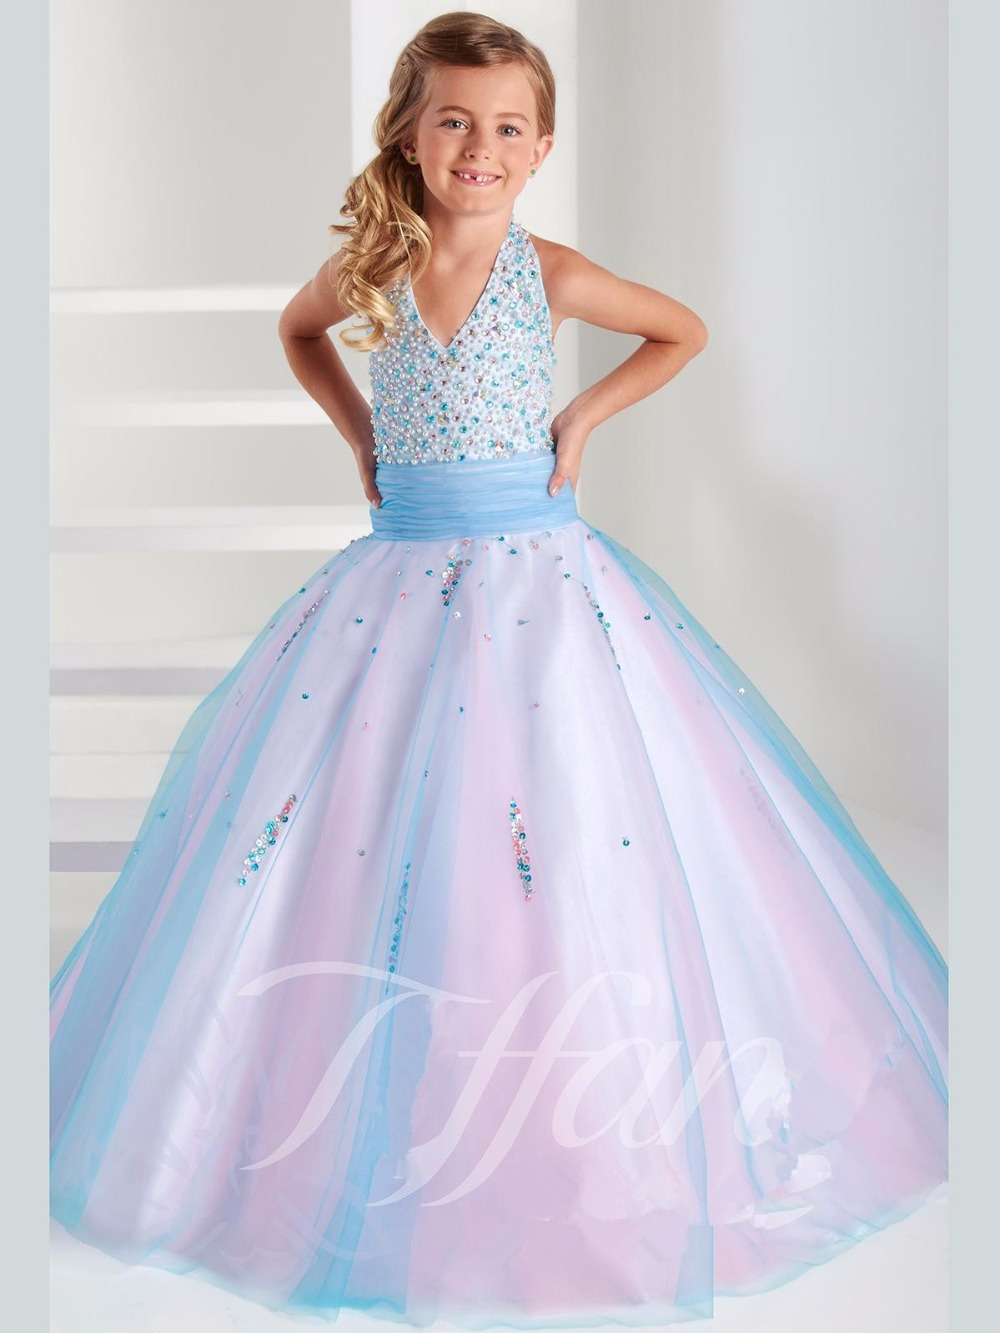 vestido longo Halter Ball Gown Pretty Children Graduation Gowns Beading Crystals Colorful Sky Blue&Pink Kids Frock Designs(China (Mainland))